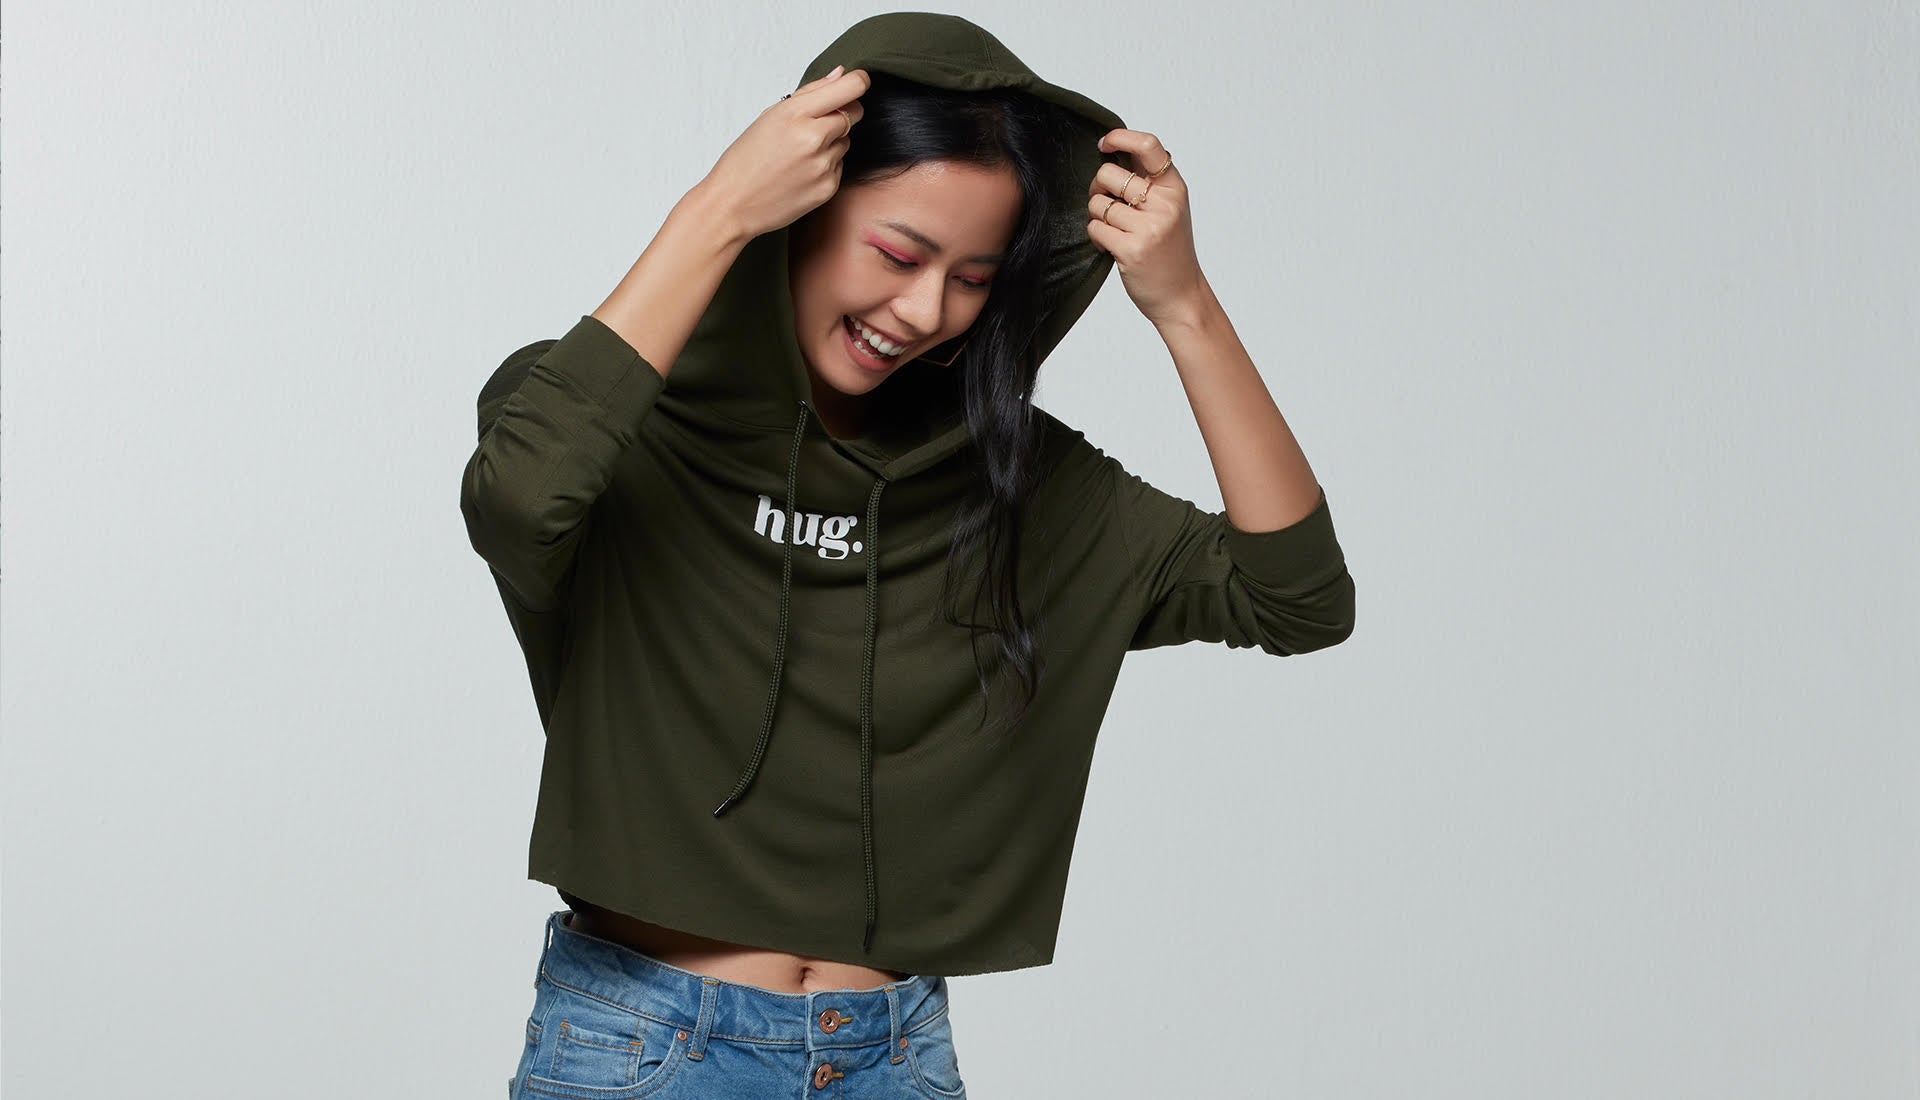 Y&F Studiofit and Nuon Hoodies and Sweats By Westside